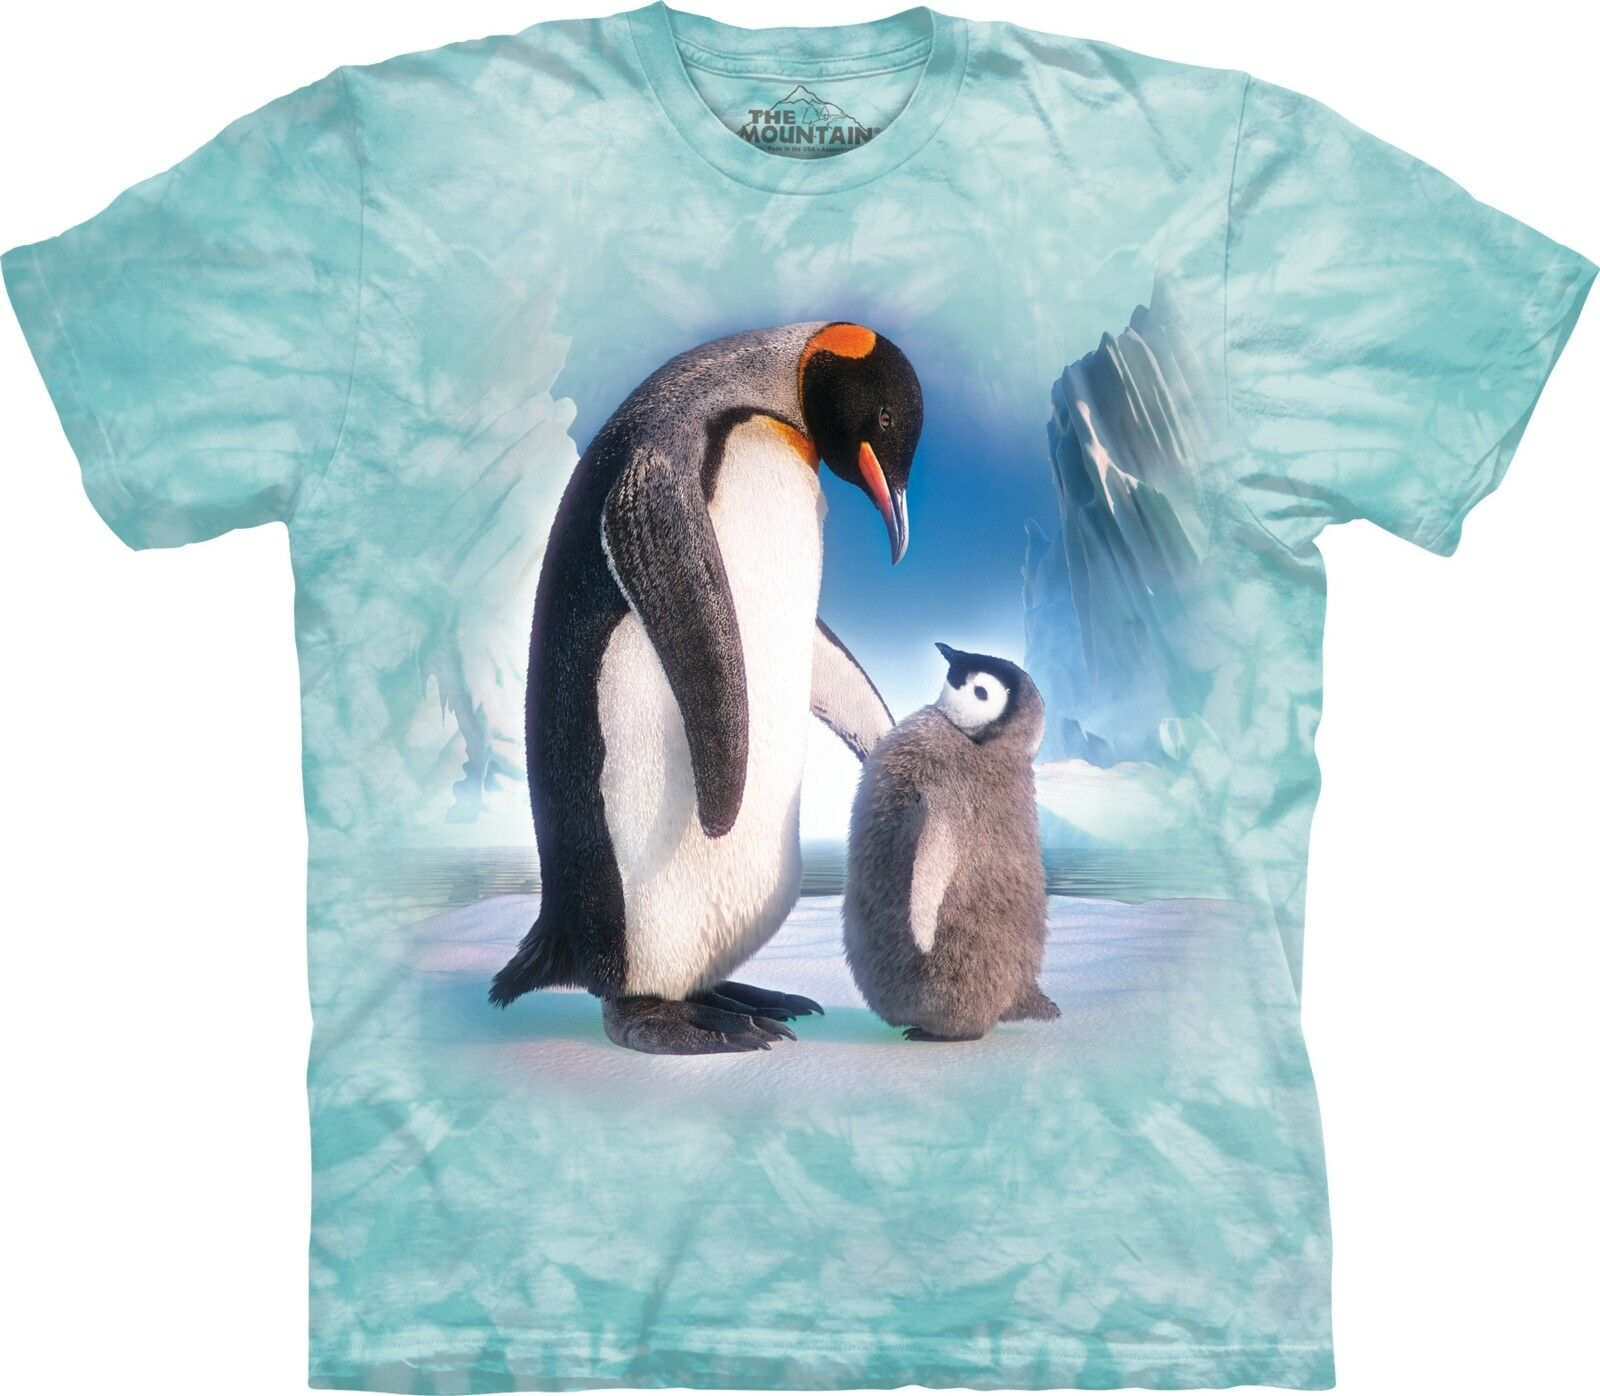 The Mountain Unisex Adult The Next Emperor Penguin T Shirt